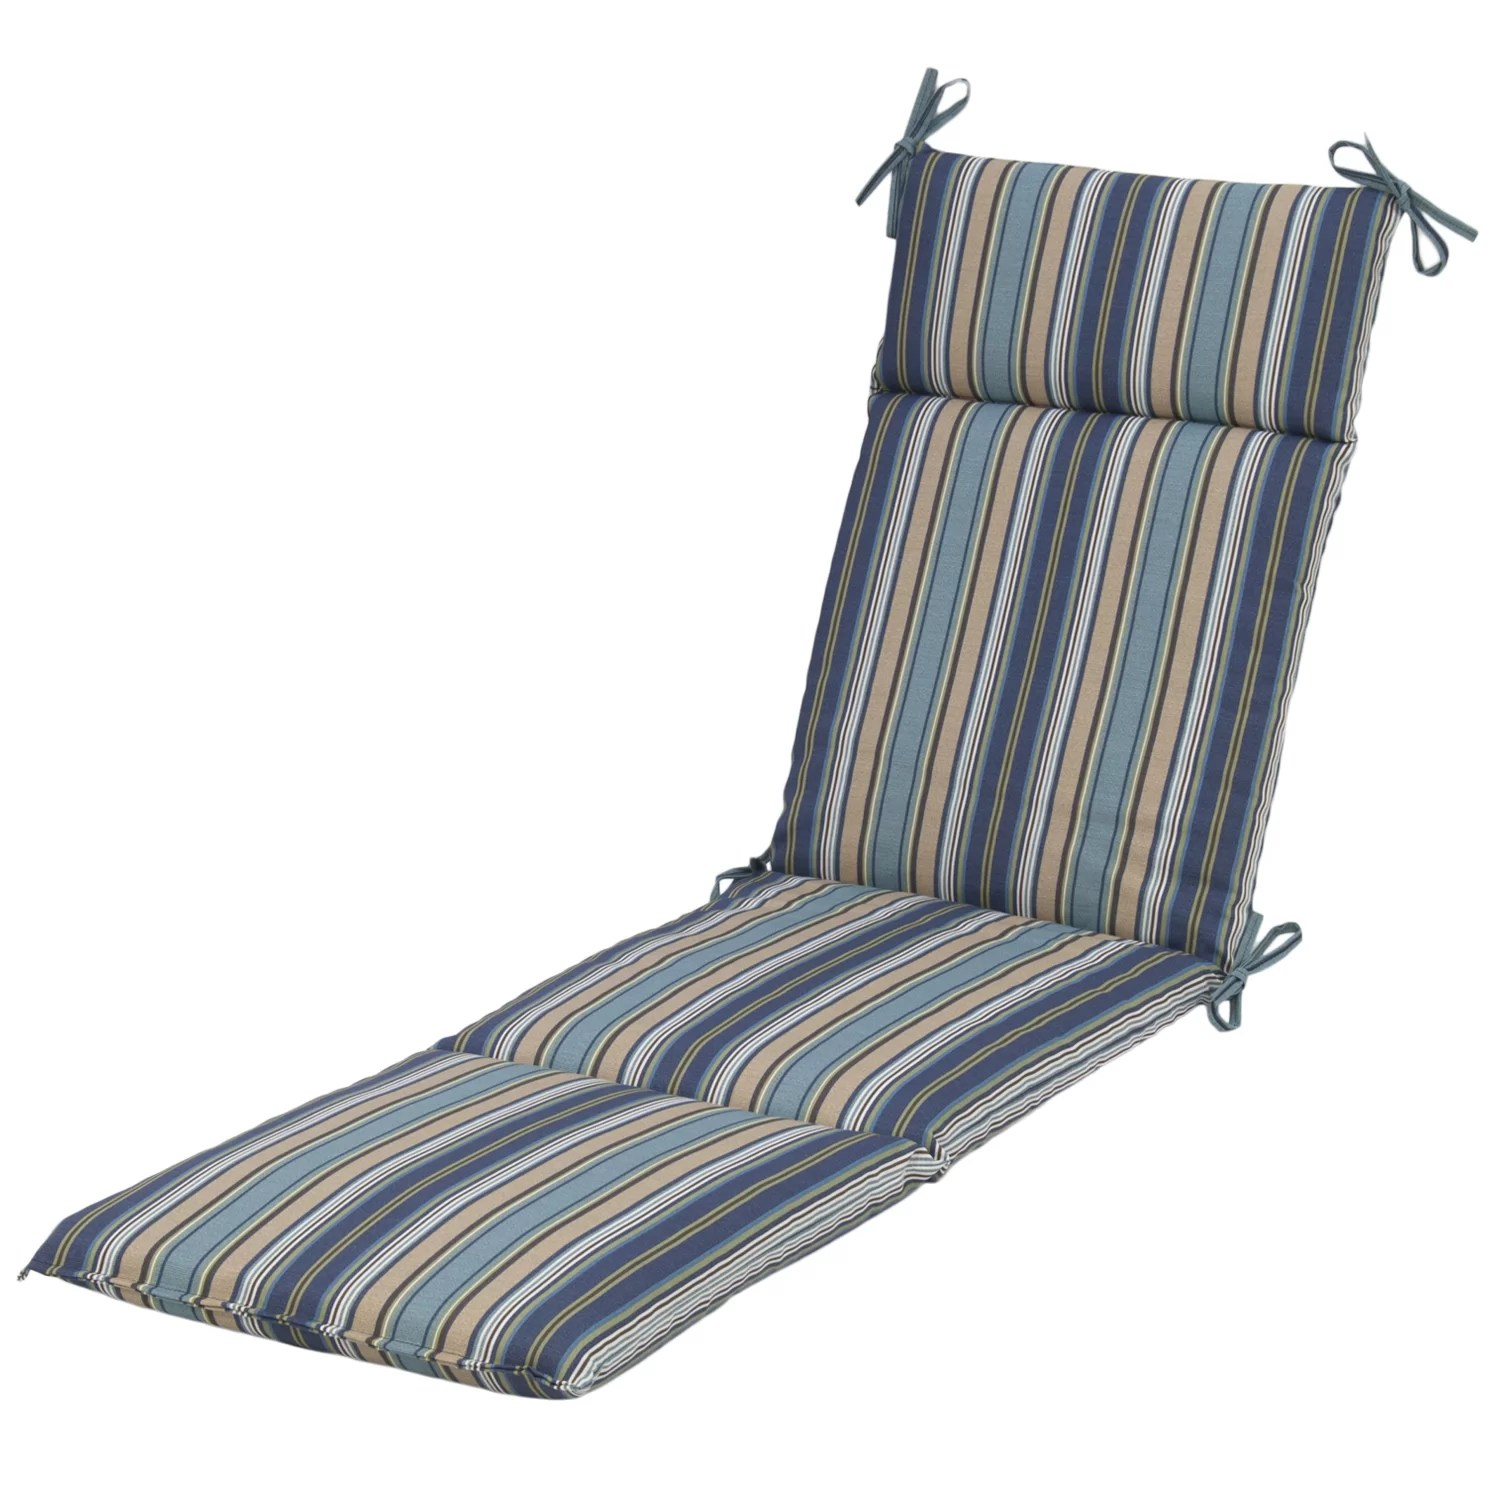 blue lounge chair cushions ikea recliner chairs plantation patterns quebec stripe pacific outdoor chaise